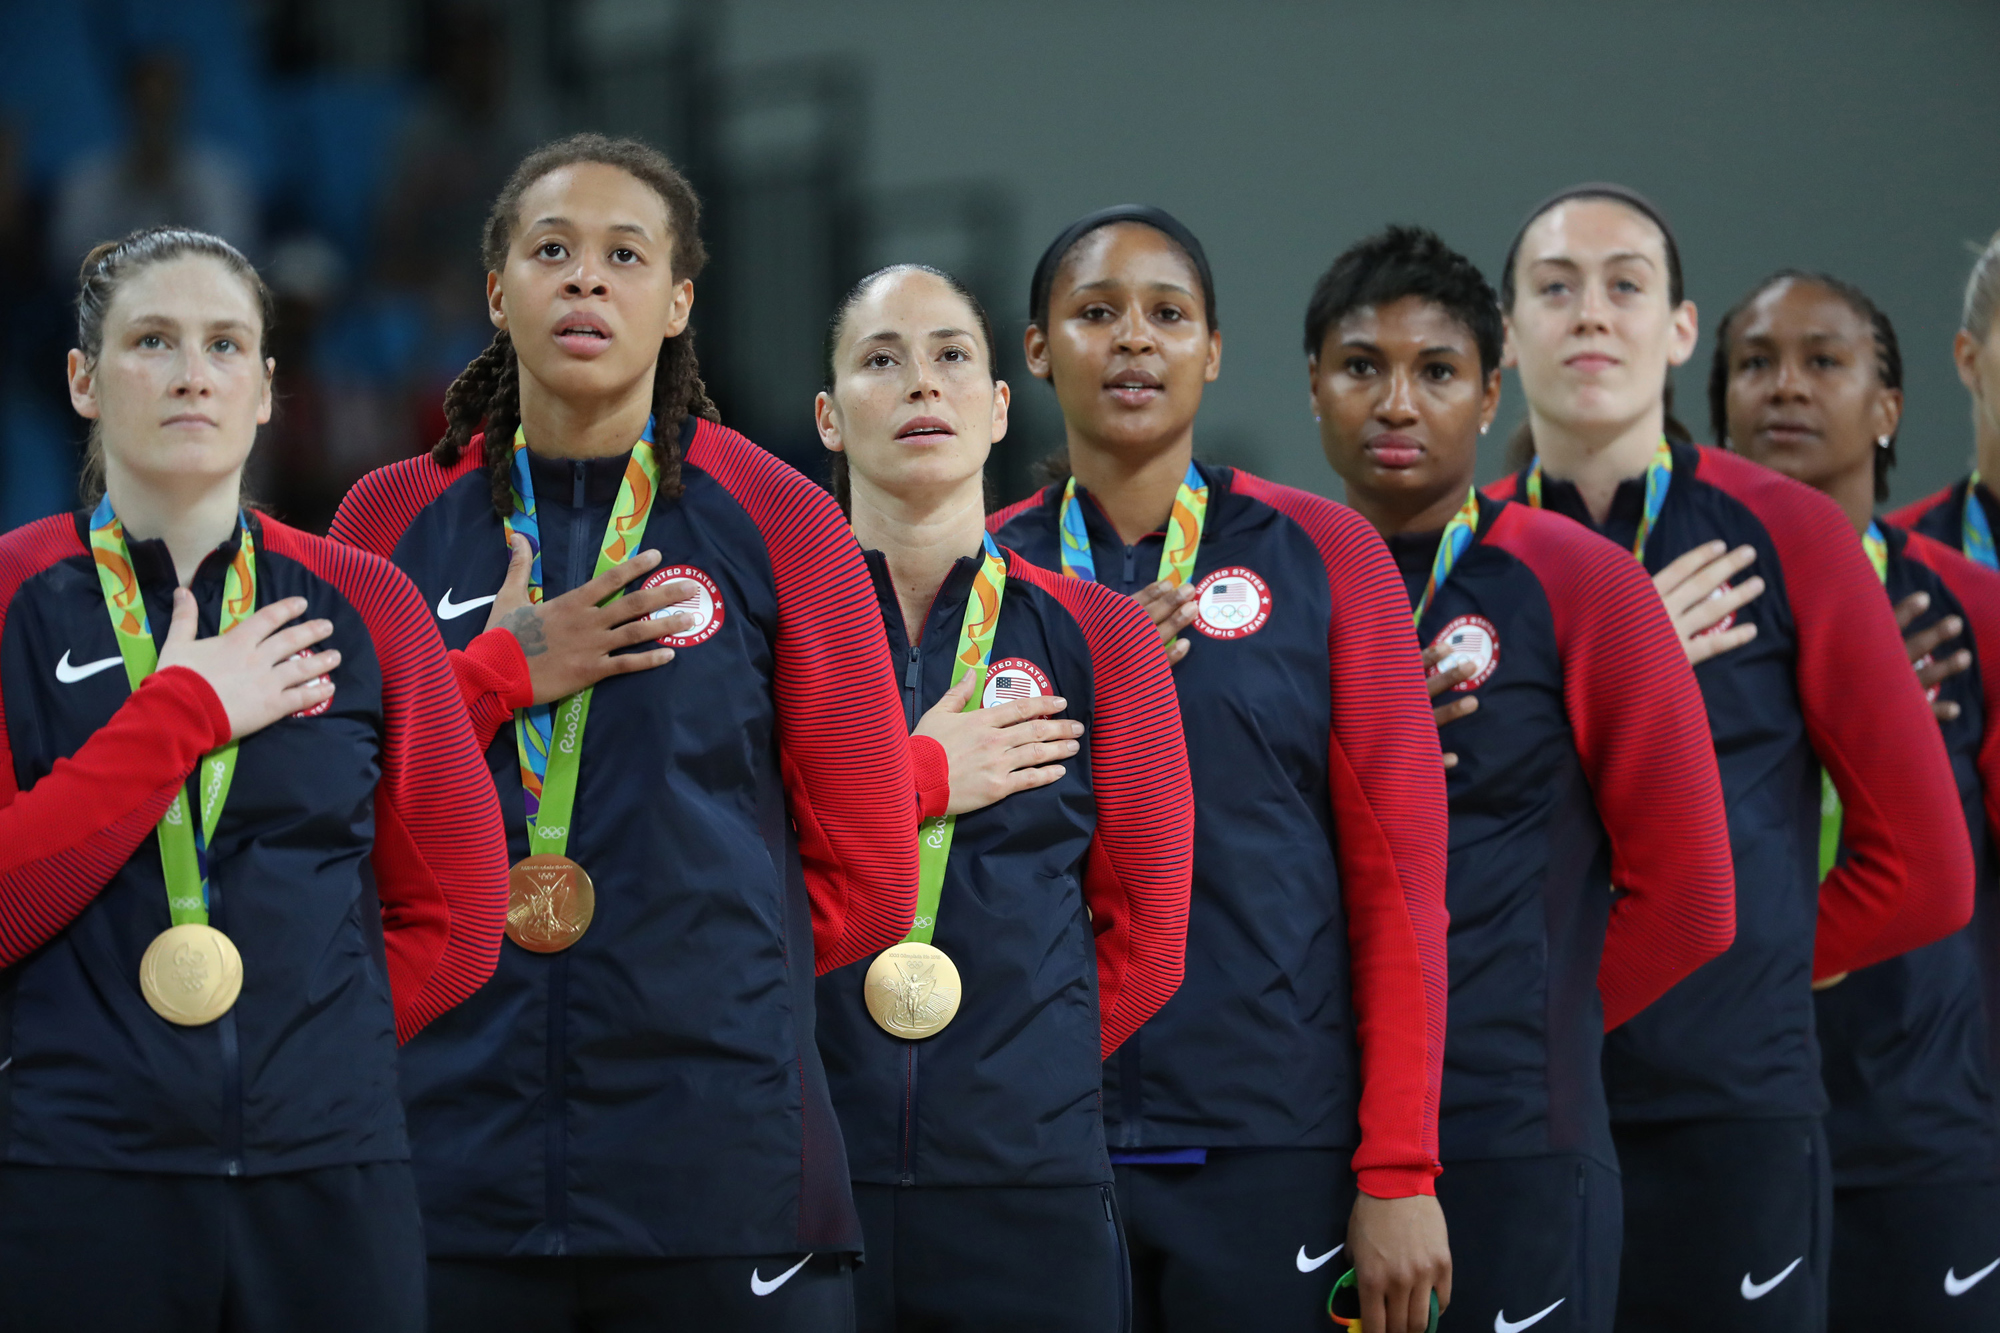 Players of the United States of America attend the awarding ceremony for the women's final of Basketball at the 2016 Rio Olympic Games in Rio de Janeiro, Brazil, on Aug. 20, 2016. The United States of America won the gold medal.